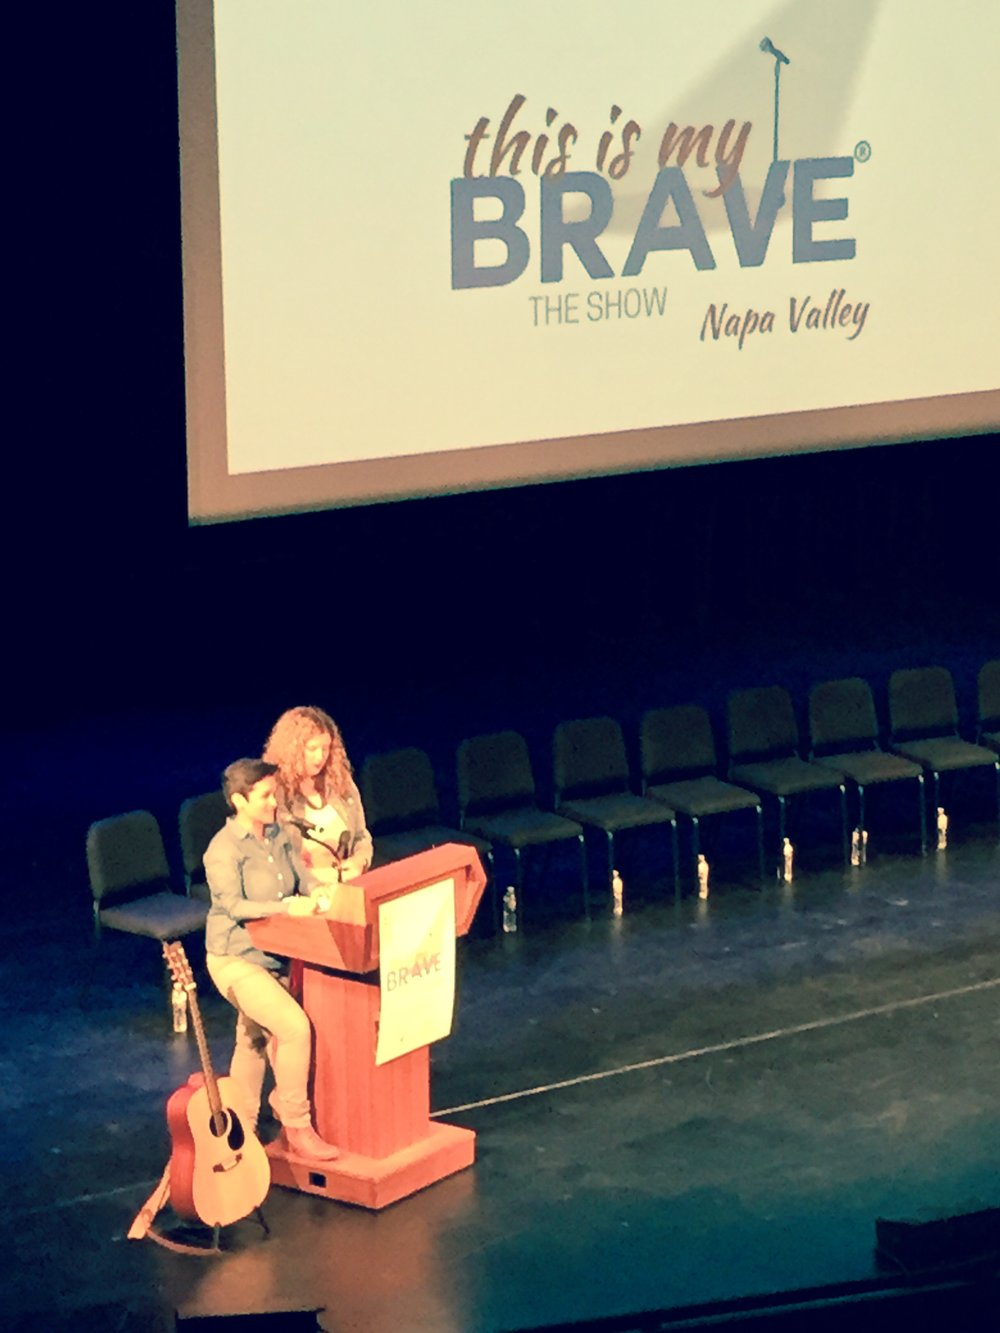 E. Beth Nelsen, MA Co-produced Napa Valley's This Is My Brave in 2017 - The mission of This Is My Brave, Inc. is to end the stigma surrounding mental health issues by sharing personal stories of individuals living successful, full lives despite mental health issues through poetry, essay and original music, on stage in front of a live audience